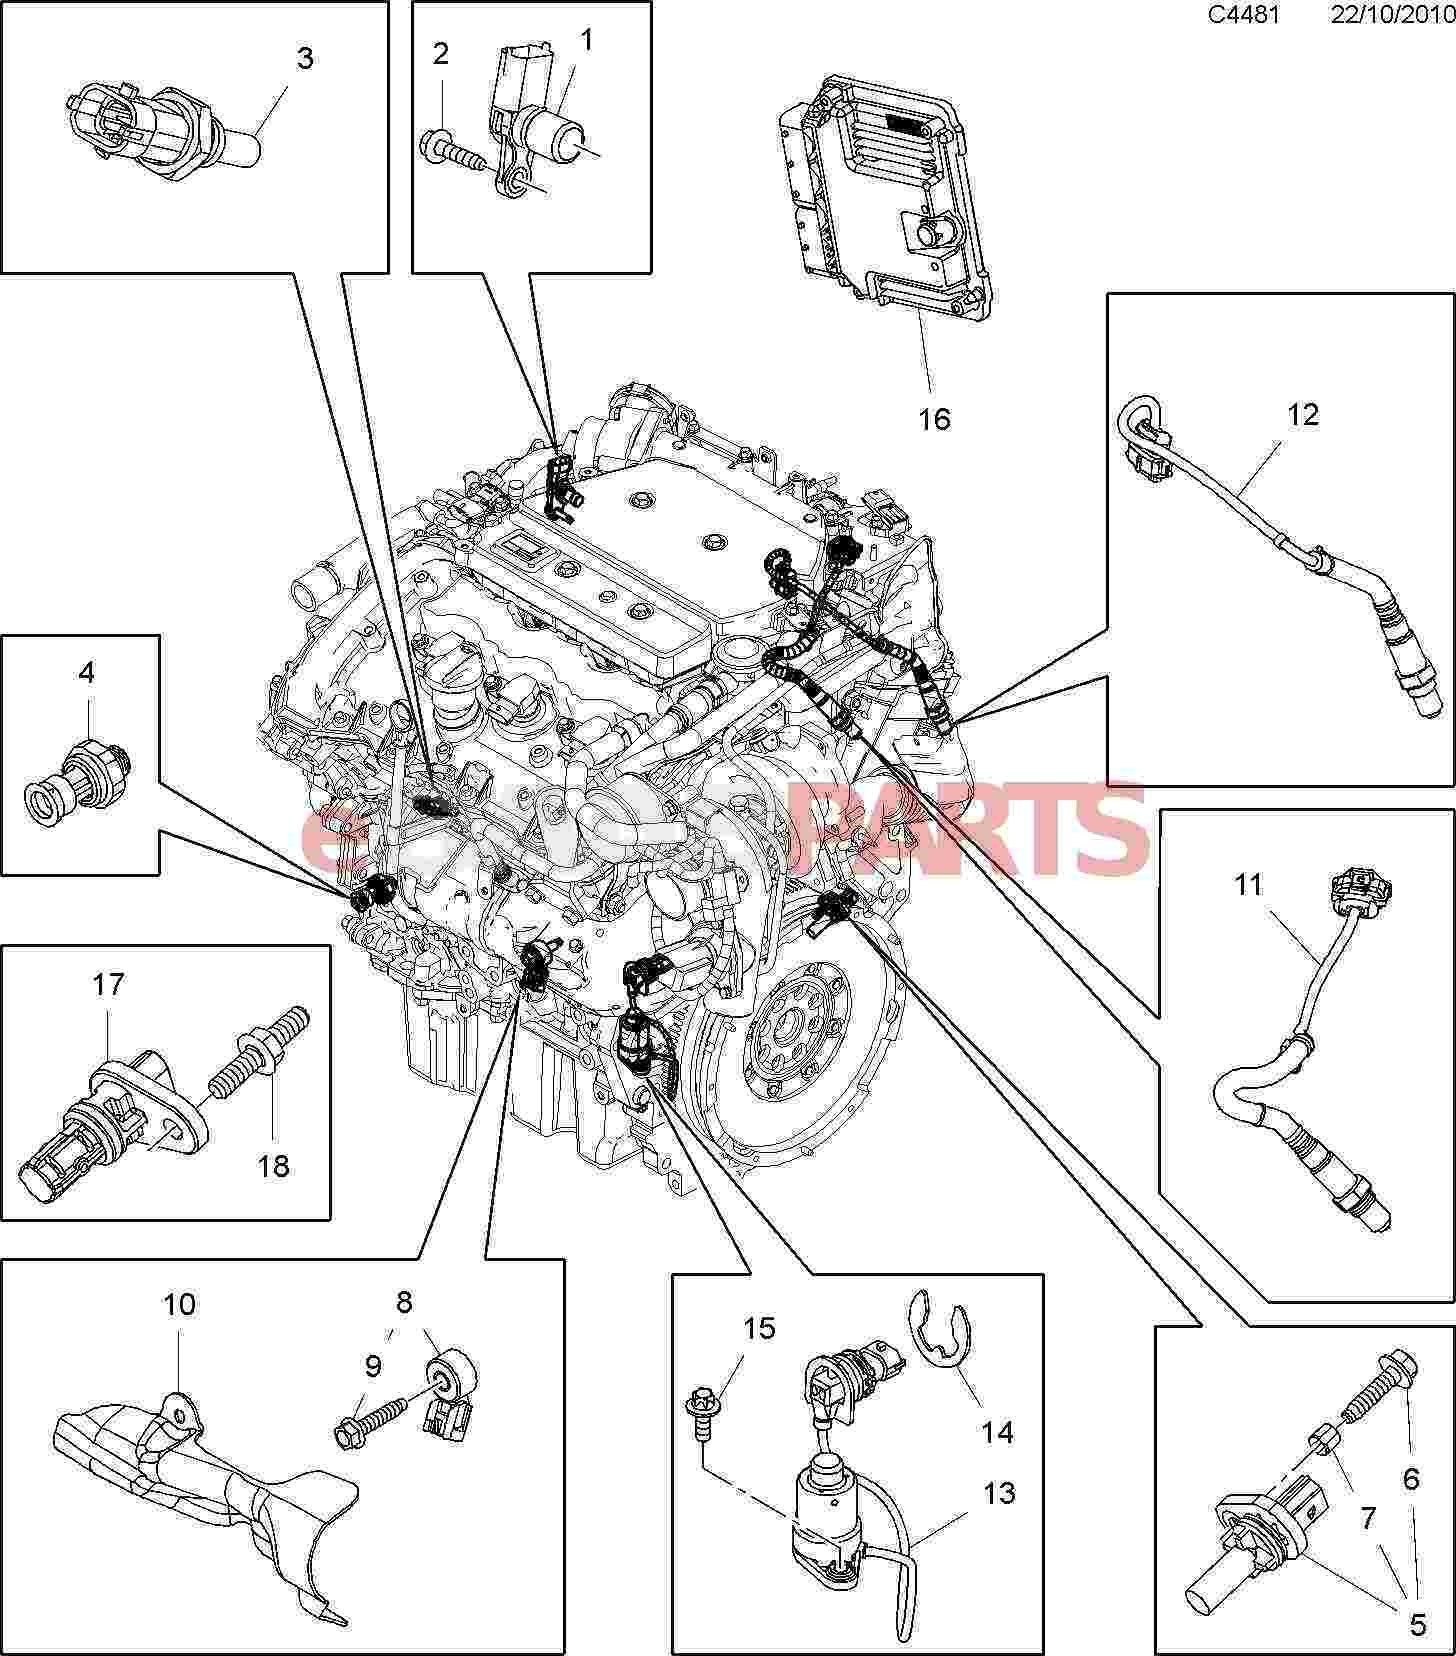 2002 saab 9 5 engine diagram wiring diagram data todaysaab 2 3 engine diagram wiring diagram data today 2002 saab 9 5 engine diagram 2002 saab 9 5 engine diagram